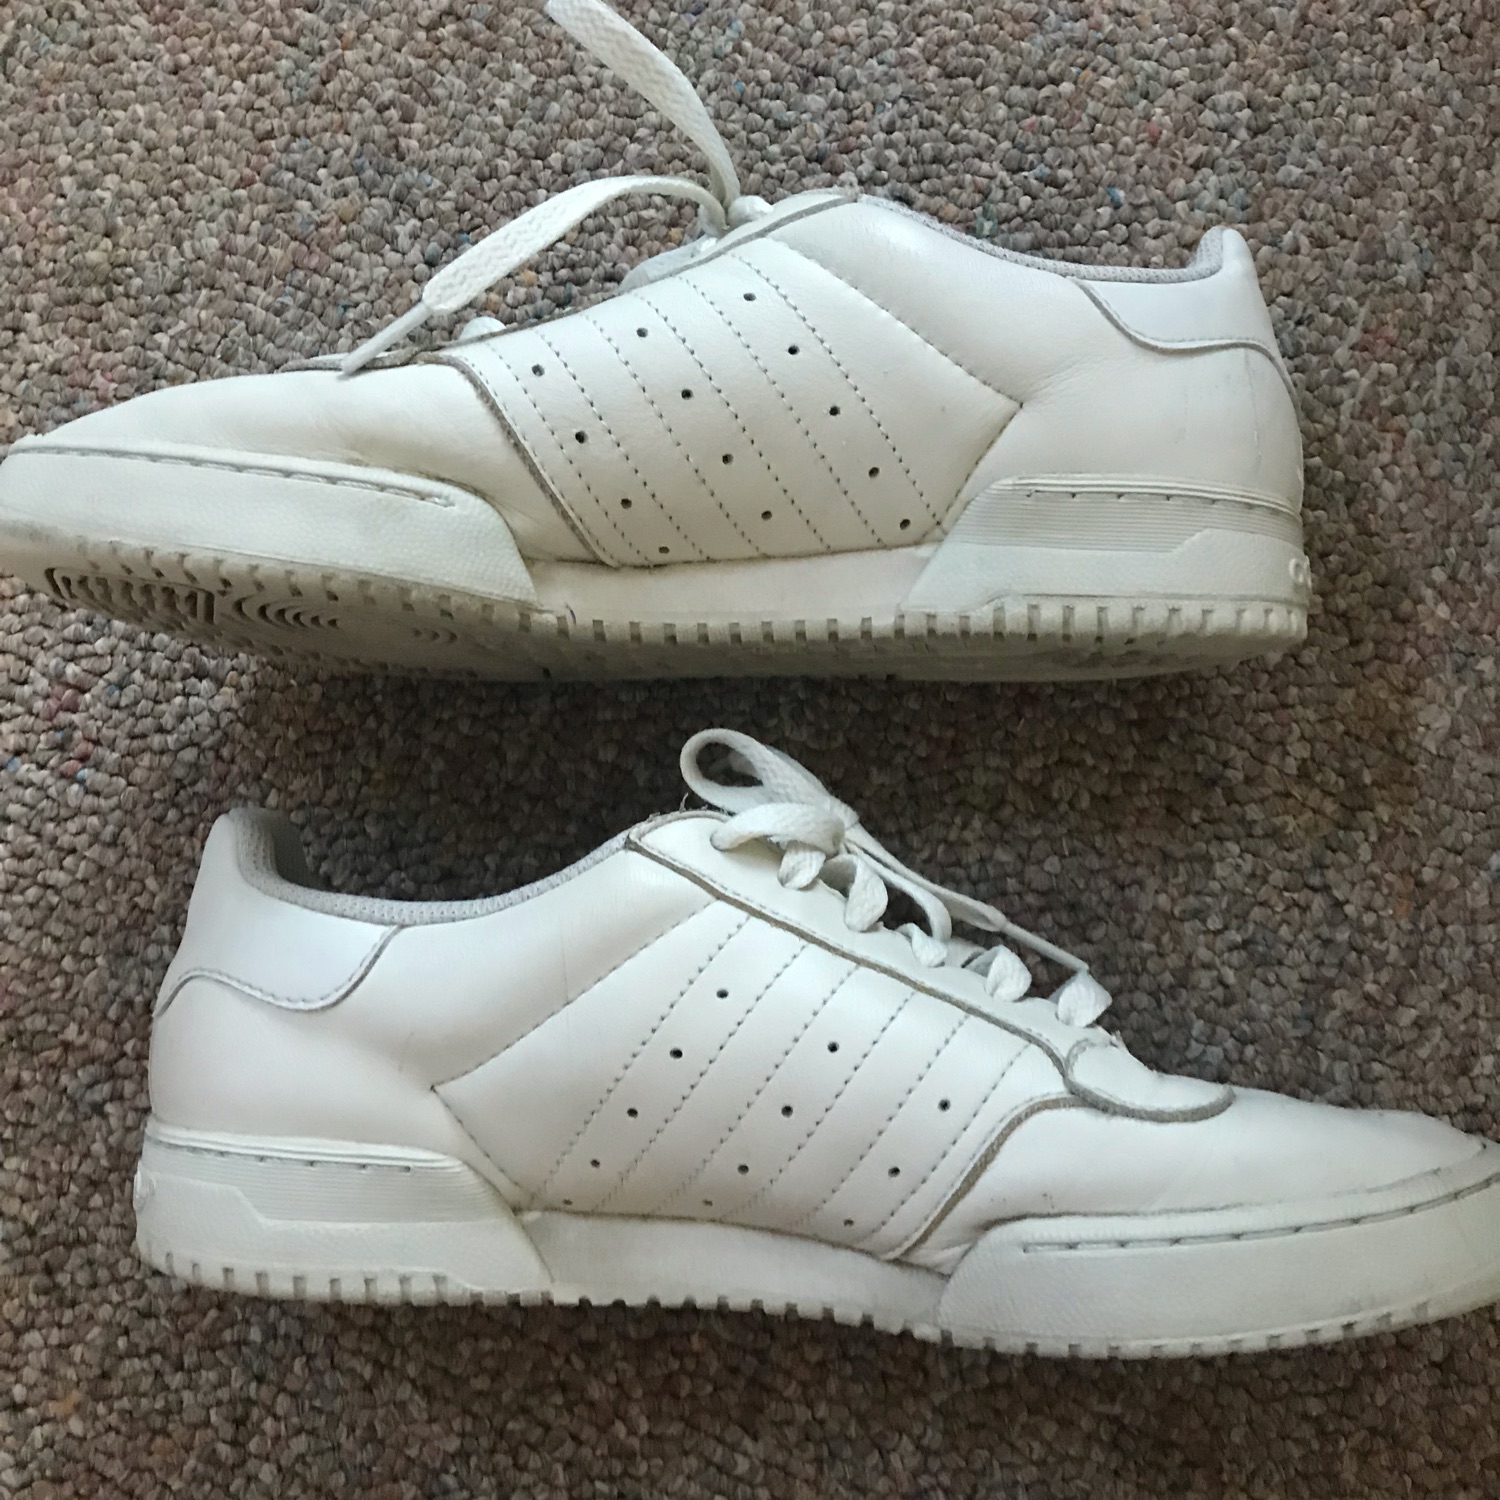 6162cb715d7 Yeezy Powerphase Calabasas White Og